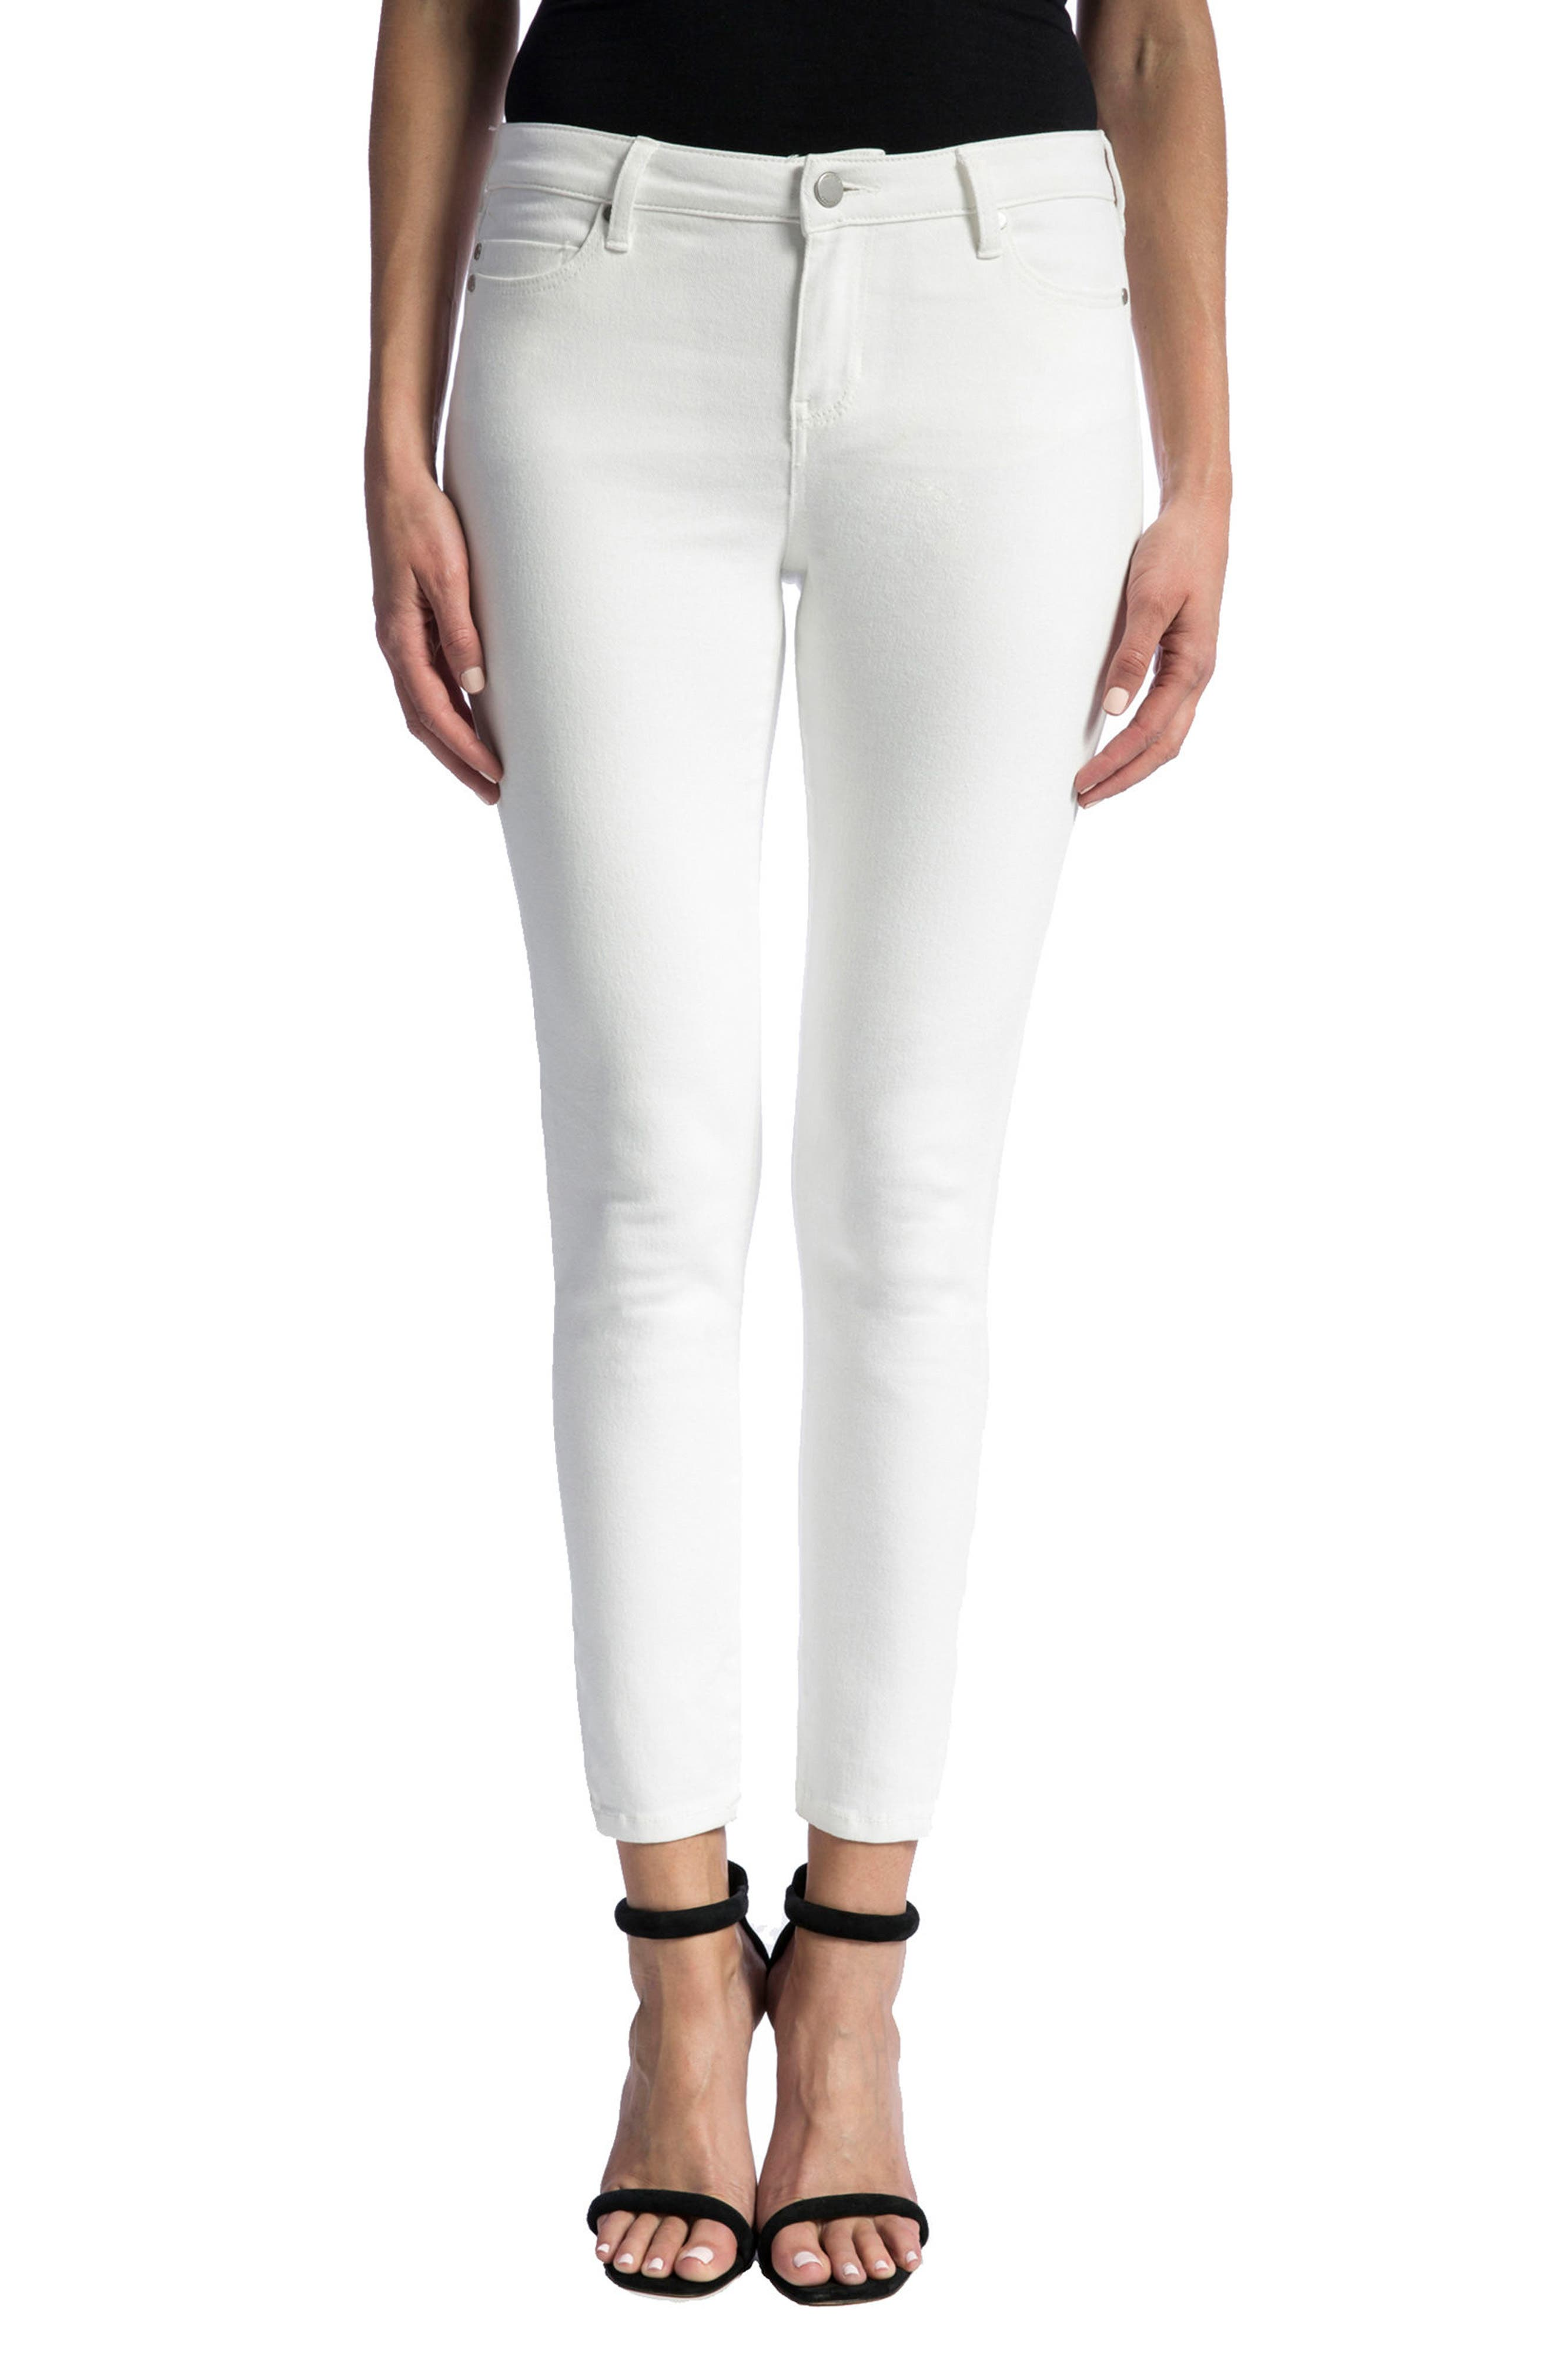 Main Image - Liverpool Jeans Company Penny Ankle Skinny Jeans (Regular & Petite)